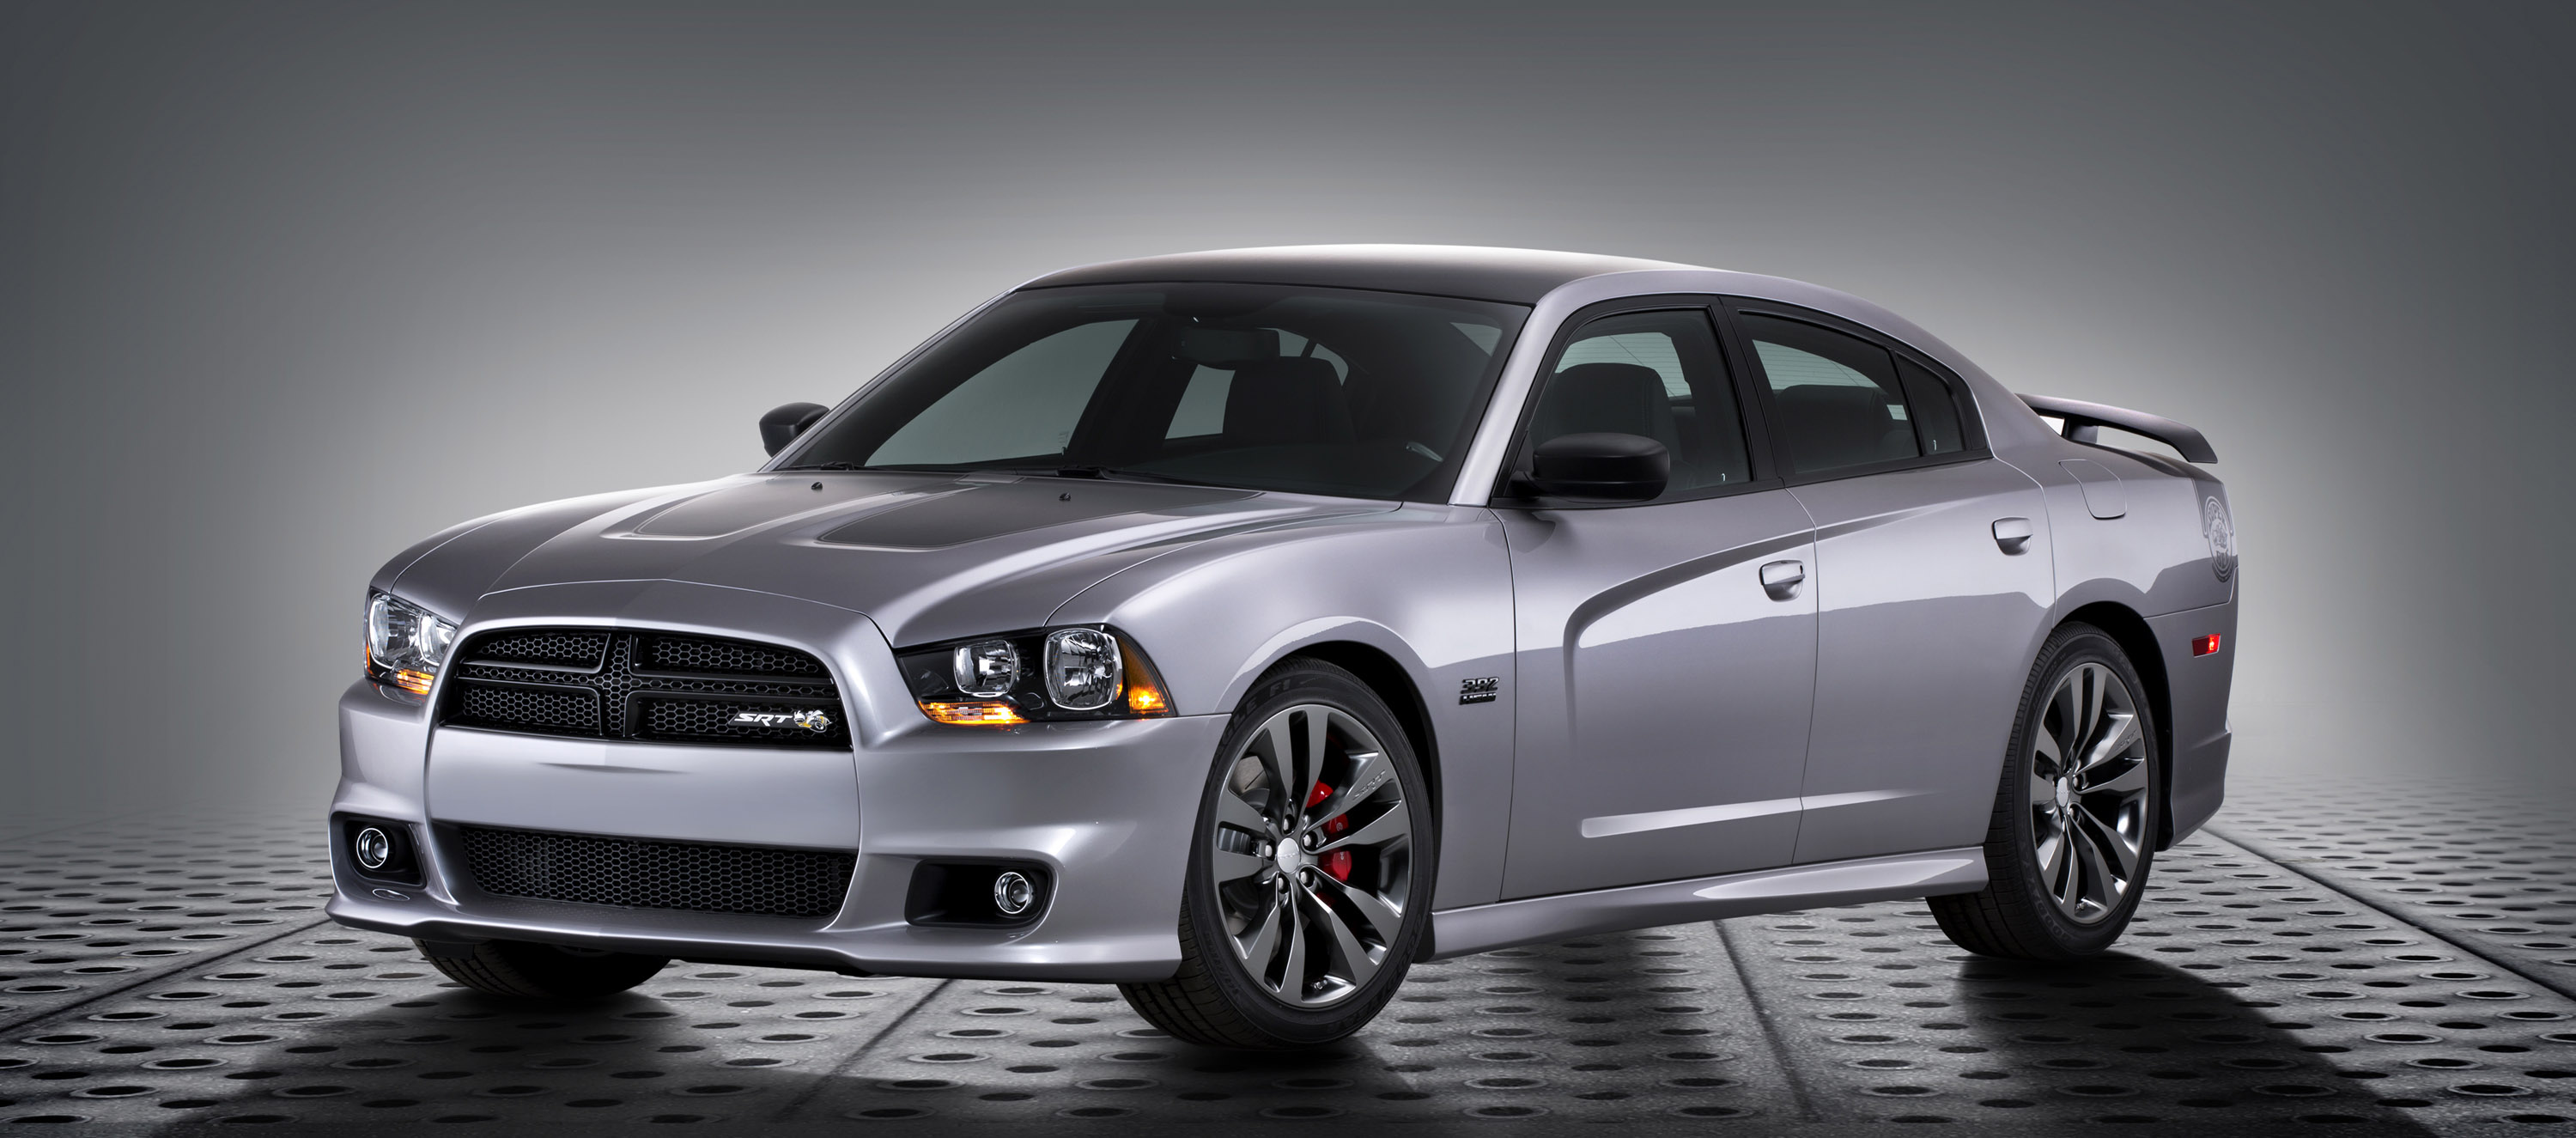 Srt Debuts Three 2014 Satin Vapor Editions In Chicago